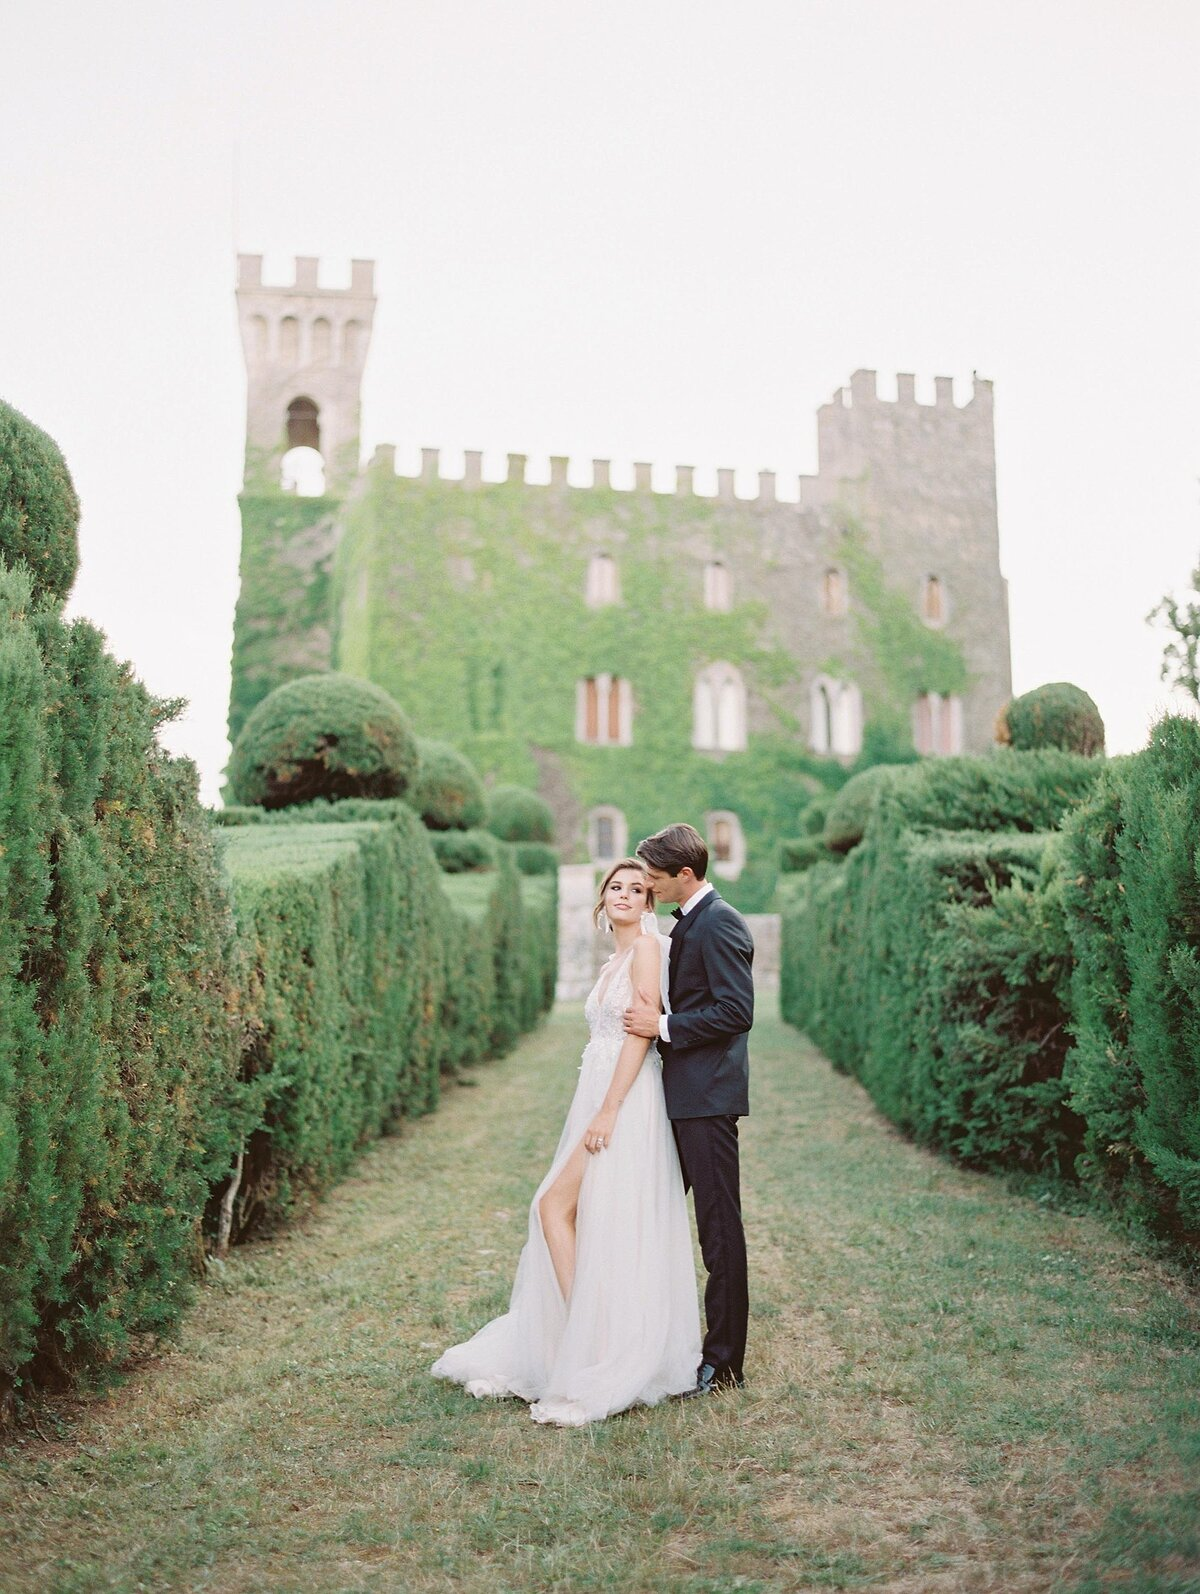 NKT-Events_Wedding-Inspiration-Editorial_Castello-di-Celsa_0509